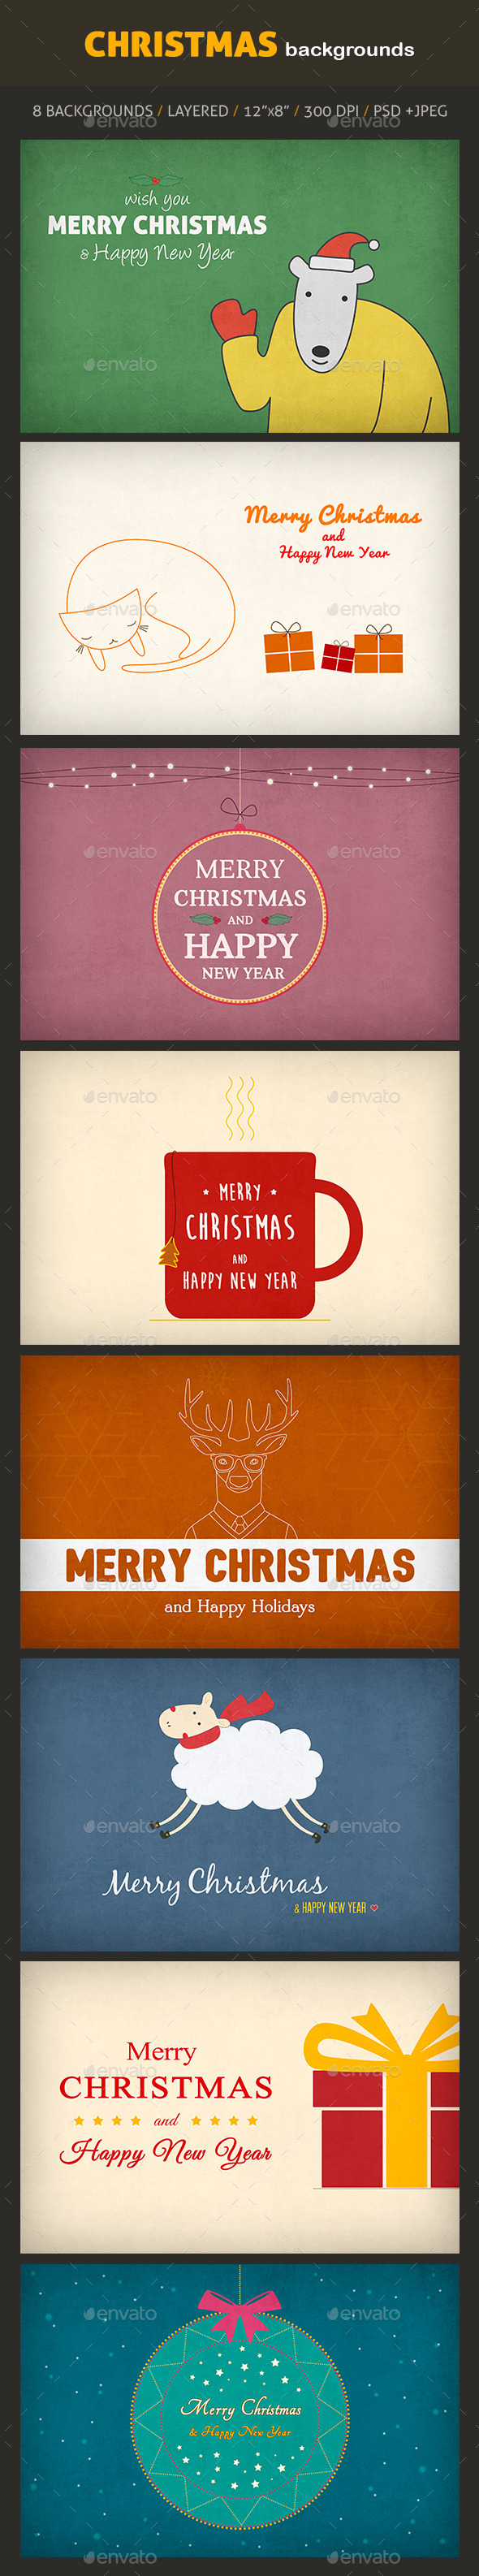 GraphicRiver Christmas Backgrounds 9893755